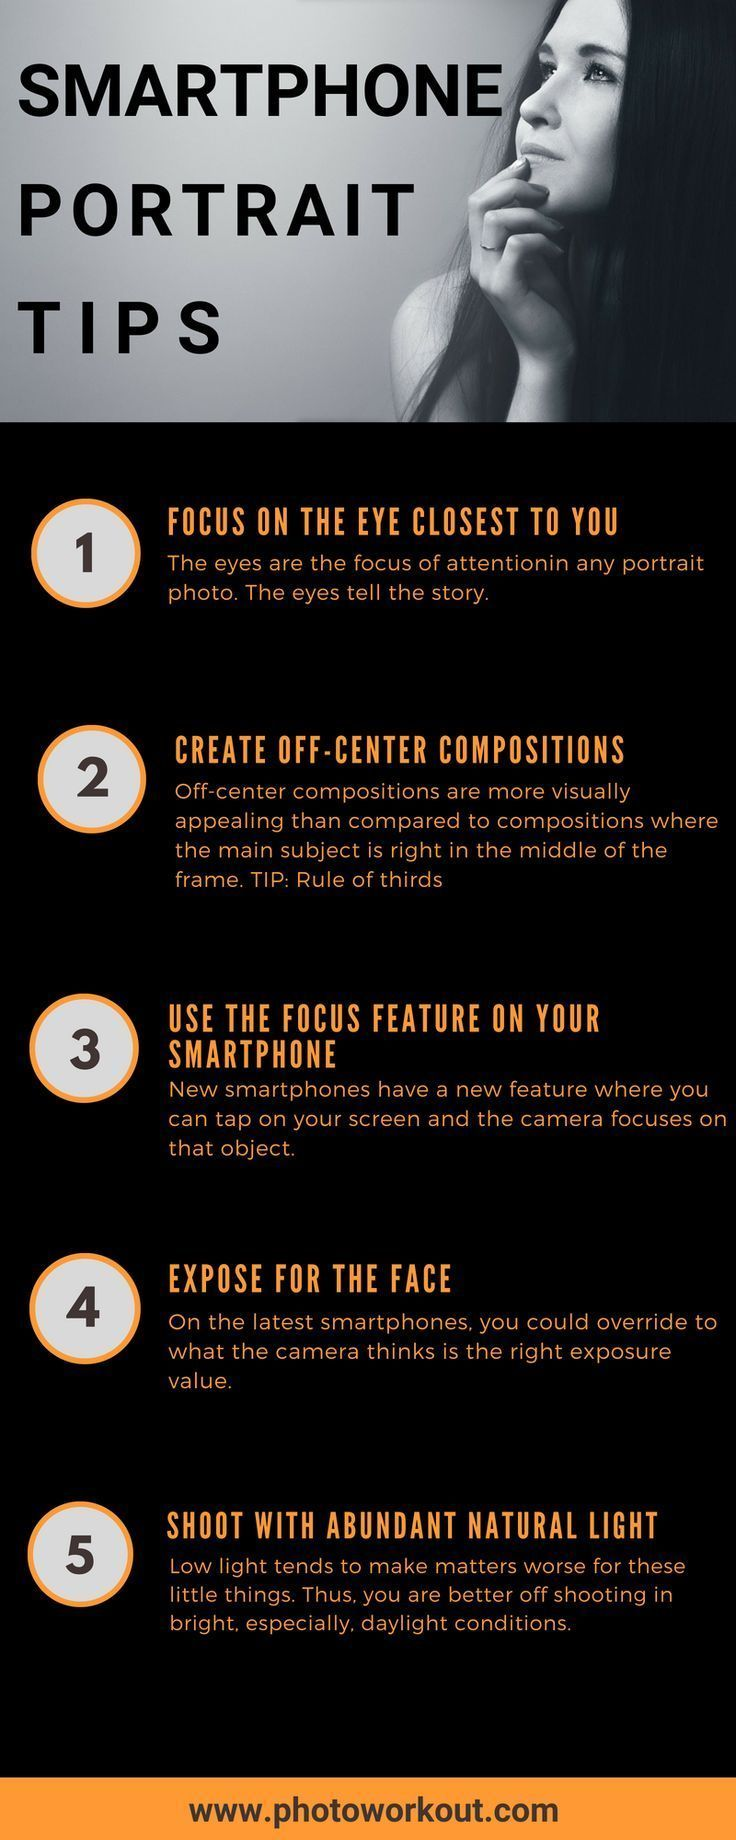 3 Smartphone Photography Tips For Casual Photographers: The Best Smartphone Portrait Photography Uncovered (5 Tips